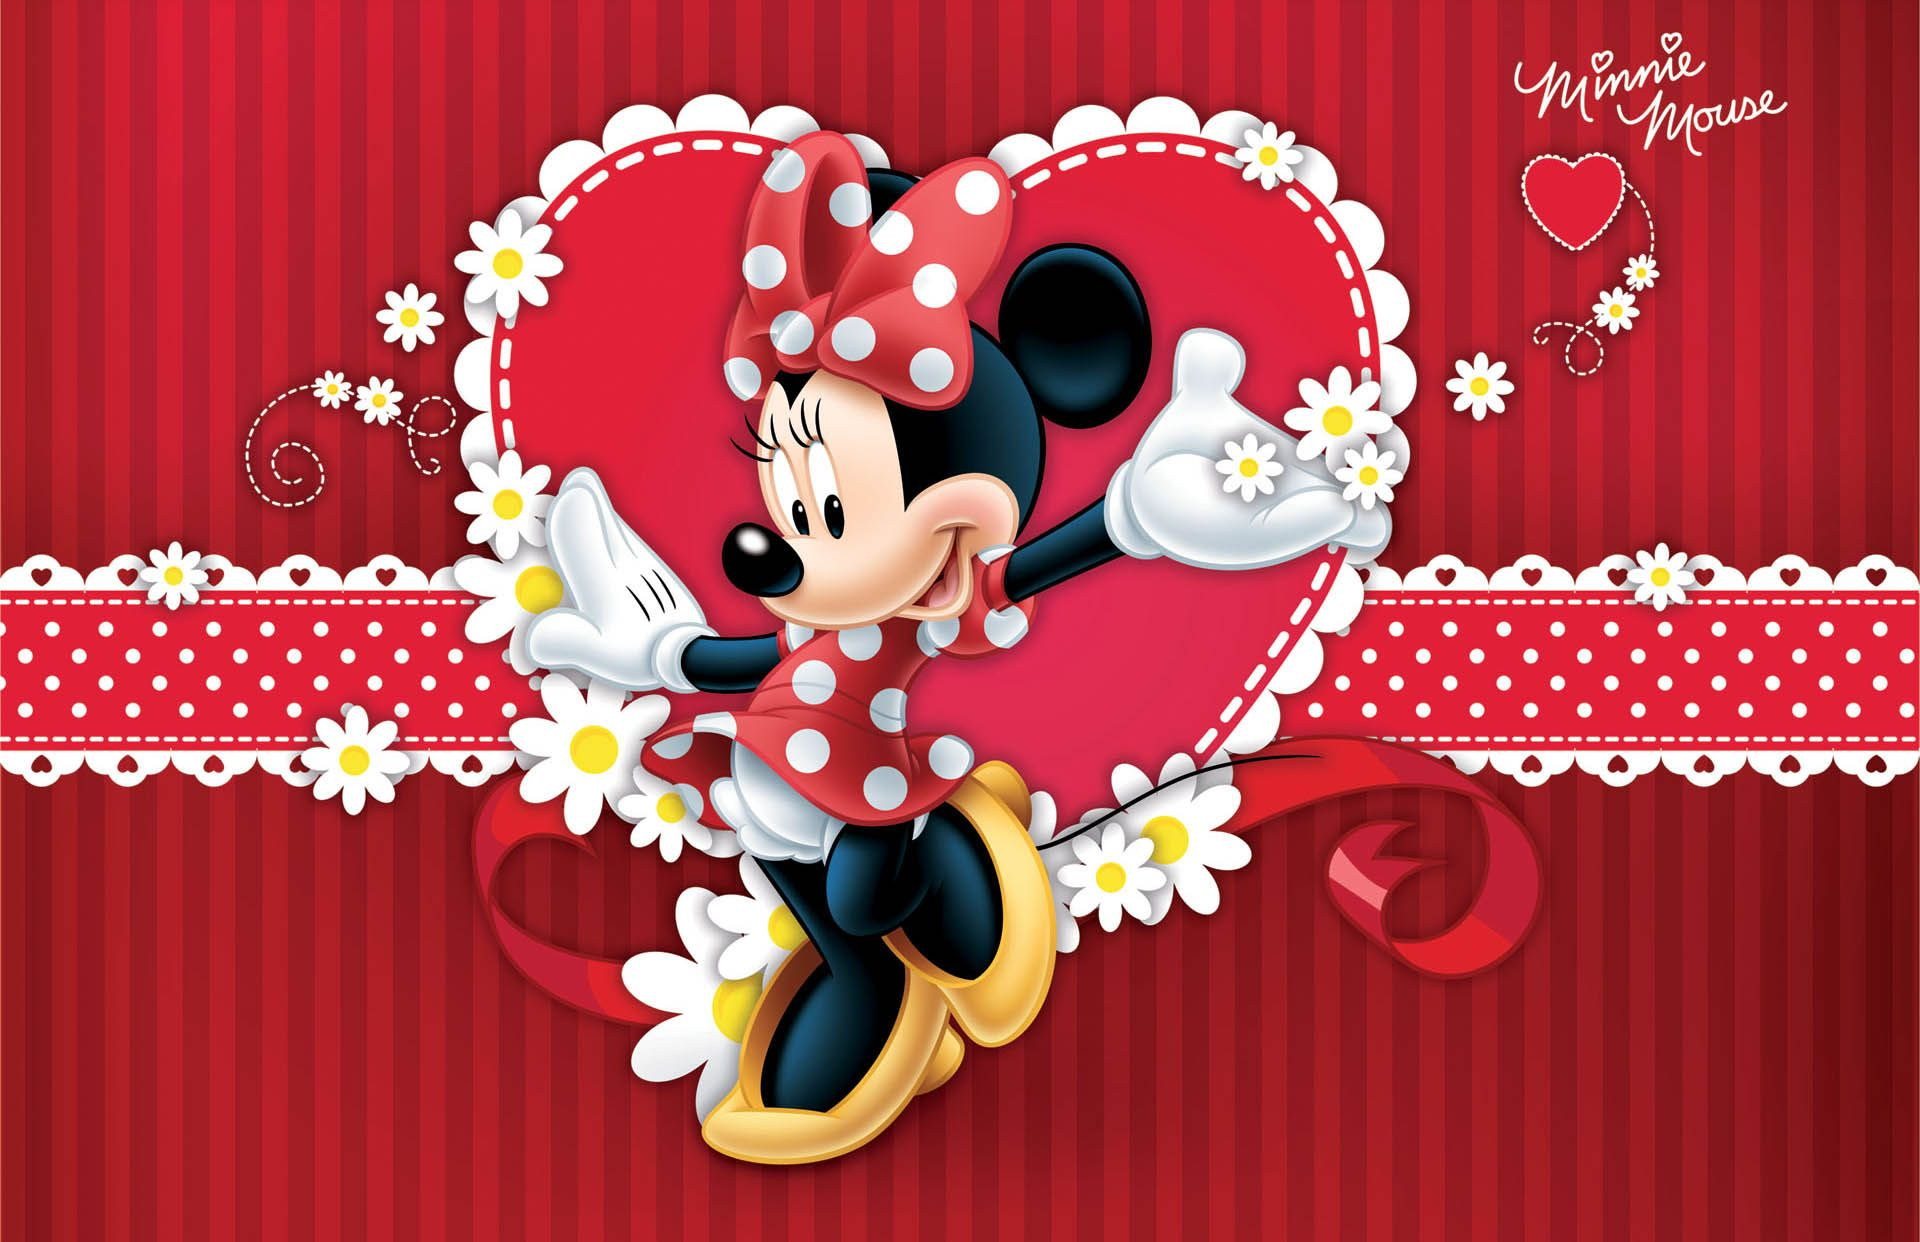 Minnie Mouse Red Wallpapers - Top Free Minnie Mouse Red ...